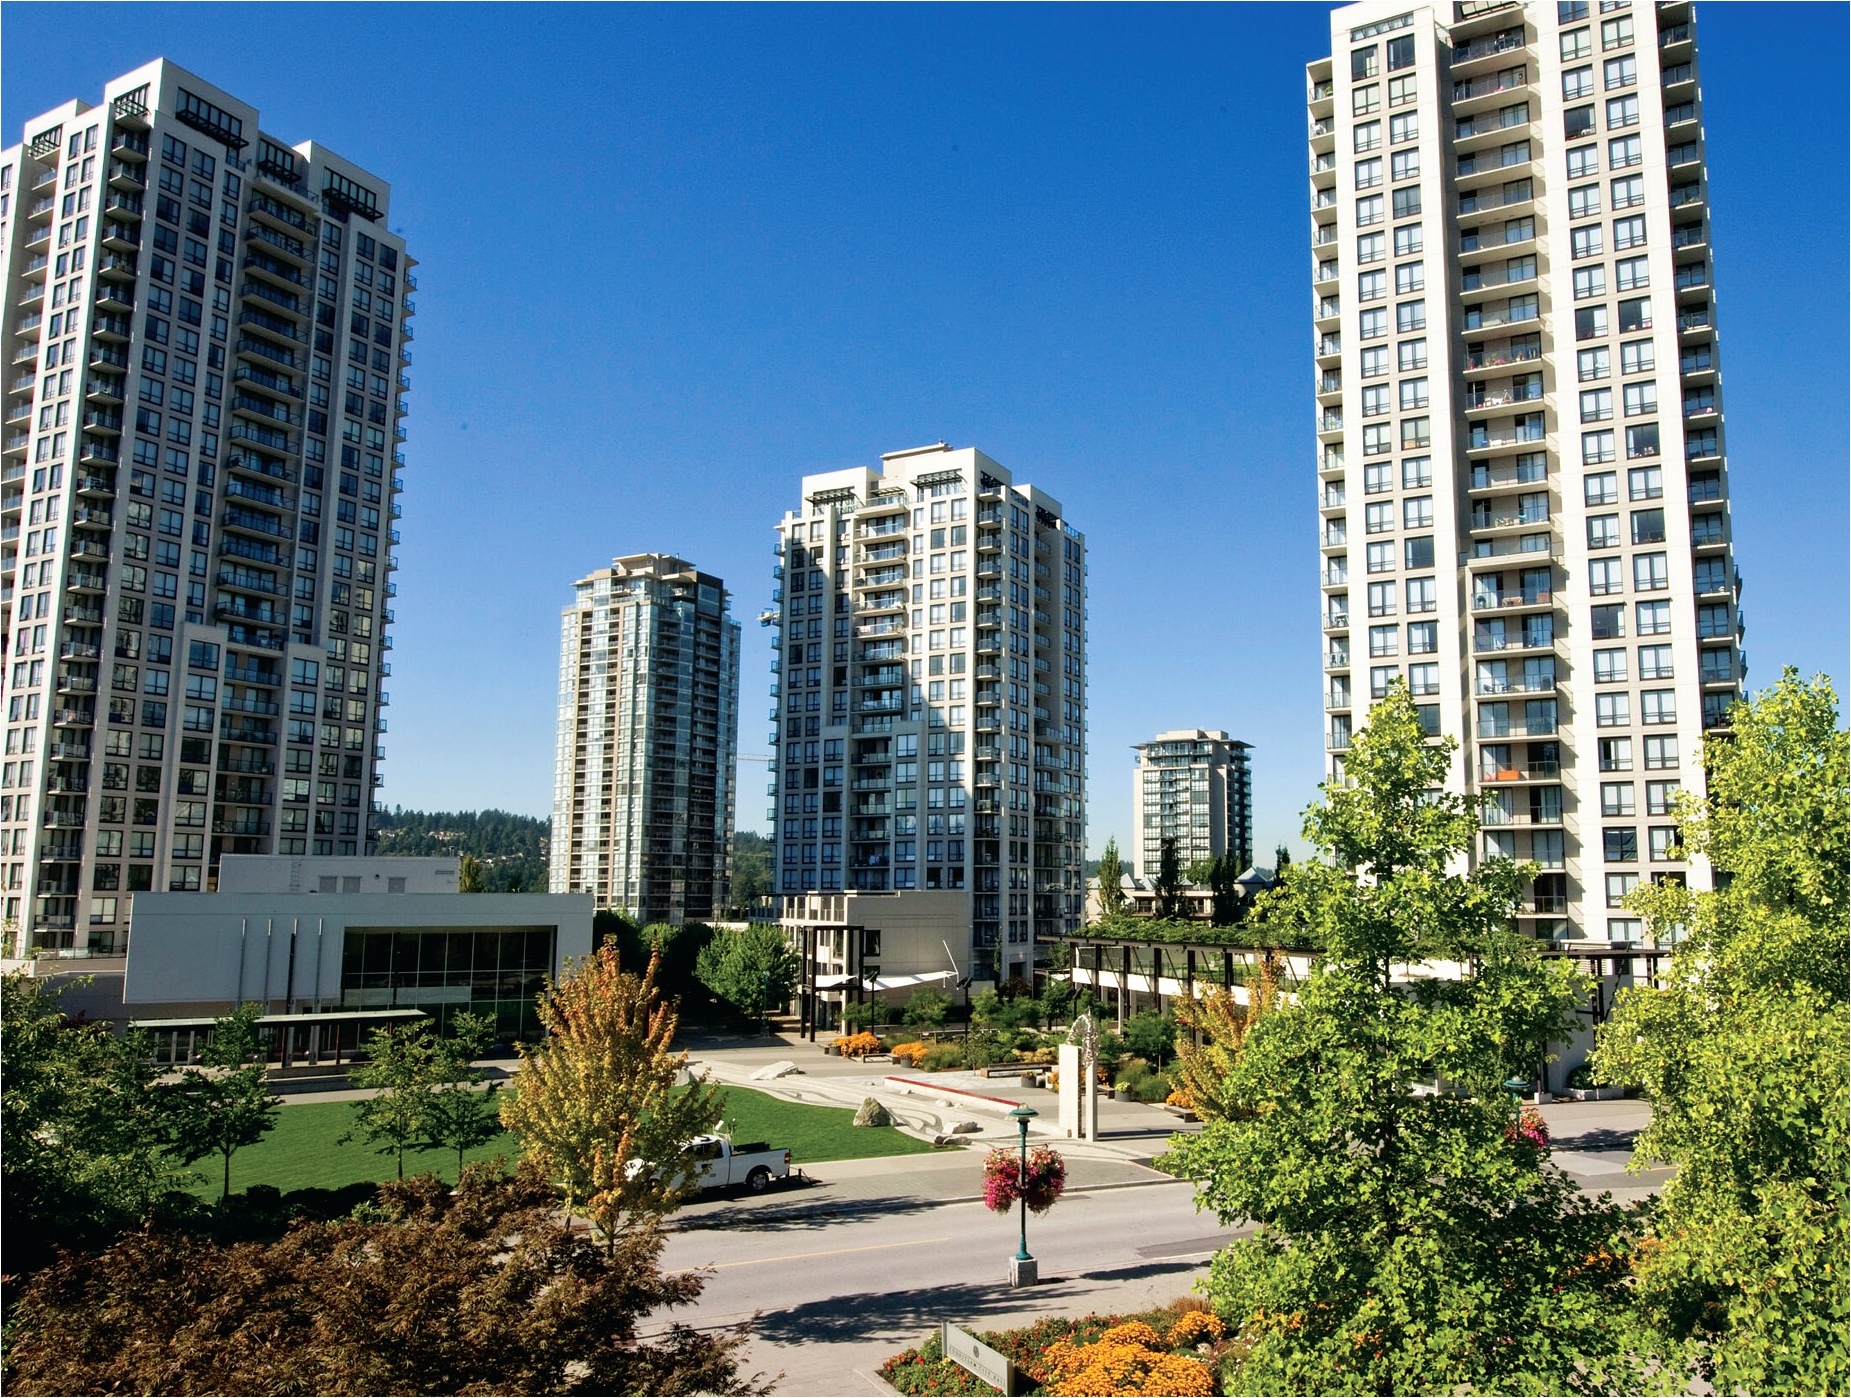 Growth Opportunities Building Business In Coquitlam The Foothills At Burke Mountain